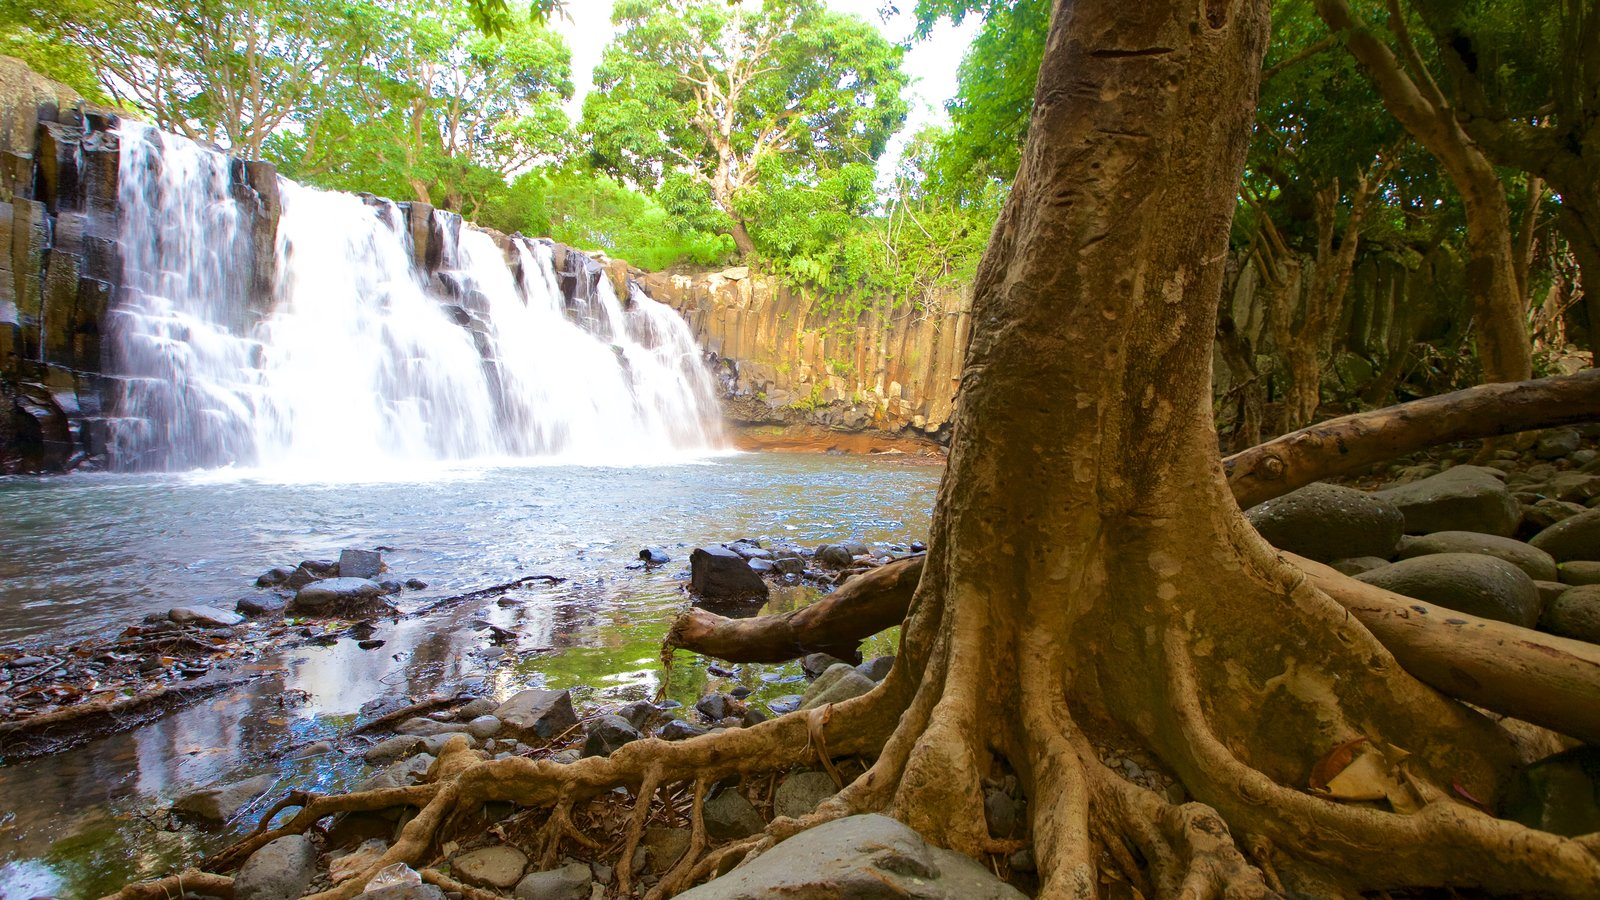 Black River Gorges National Park which includes a waterfall and a river or creek